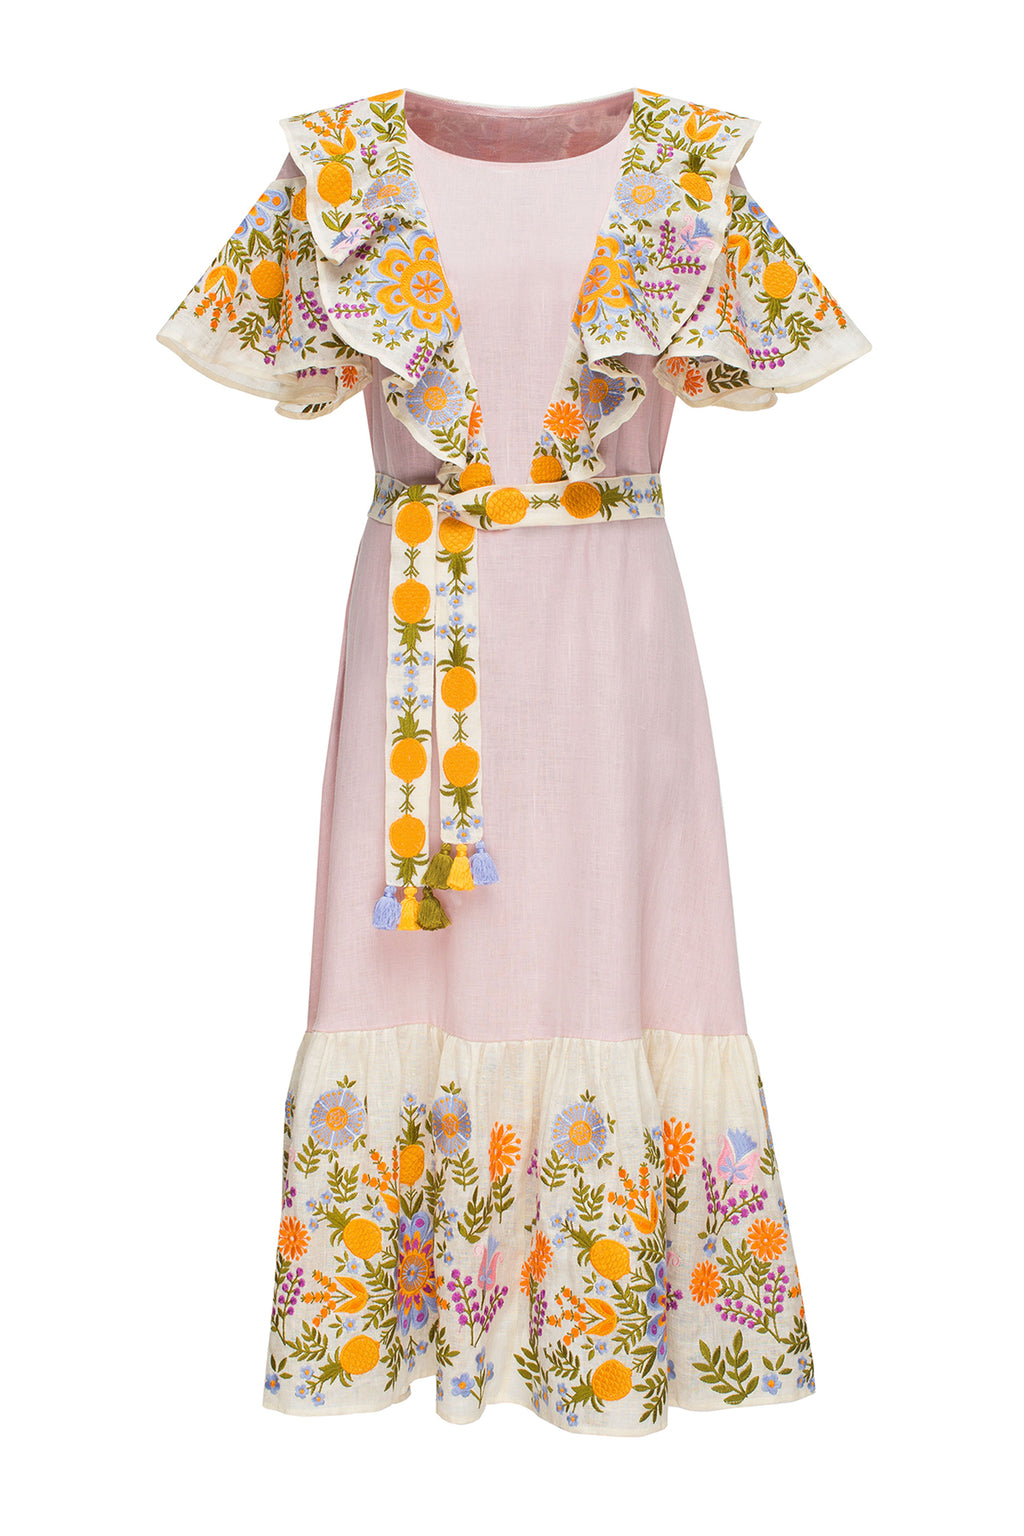 PINEAPPLE midi dress in pink/multicolor